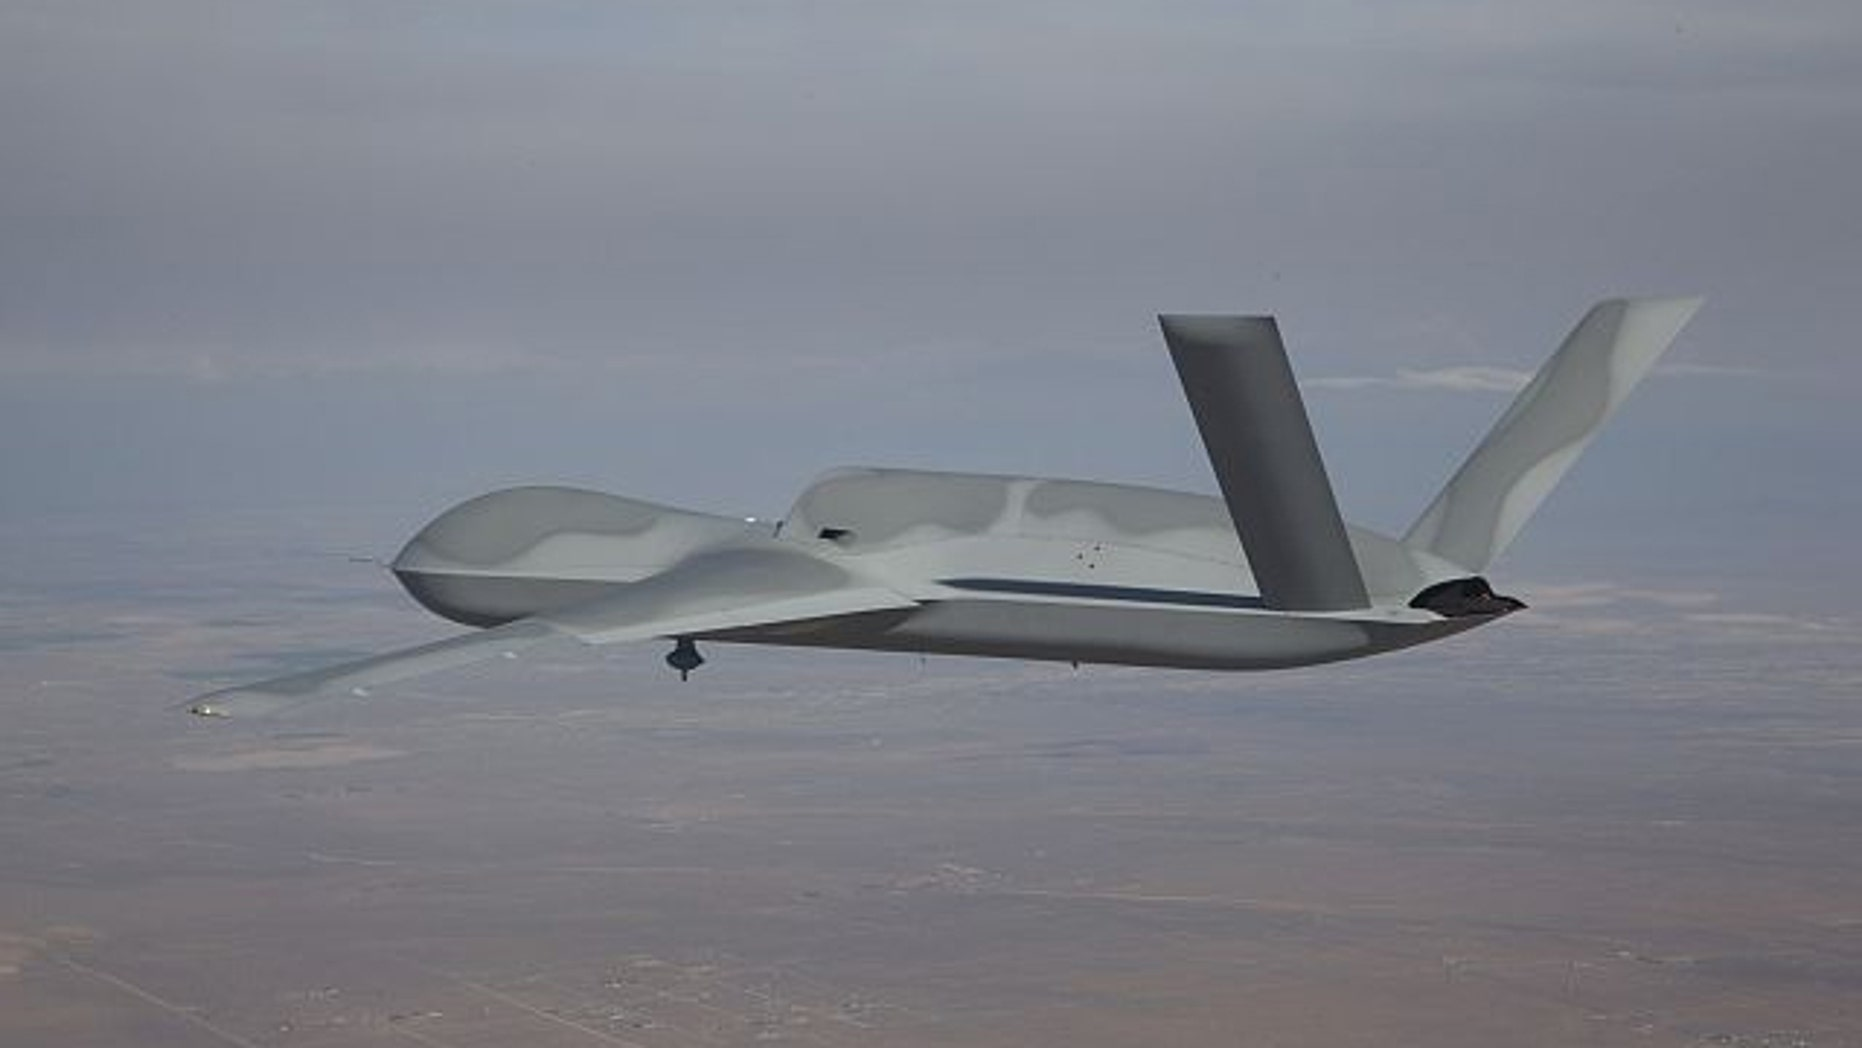 FILE: This photo shows an Air Force stealth drone called the Avenger.